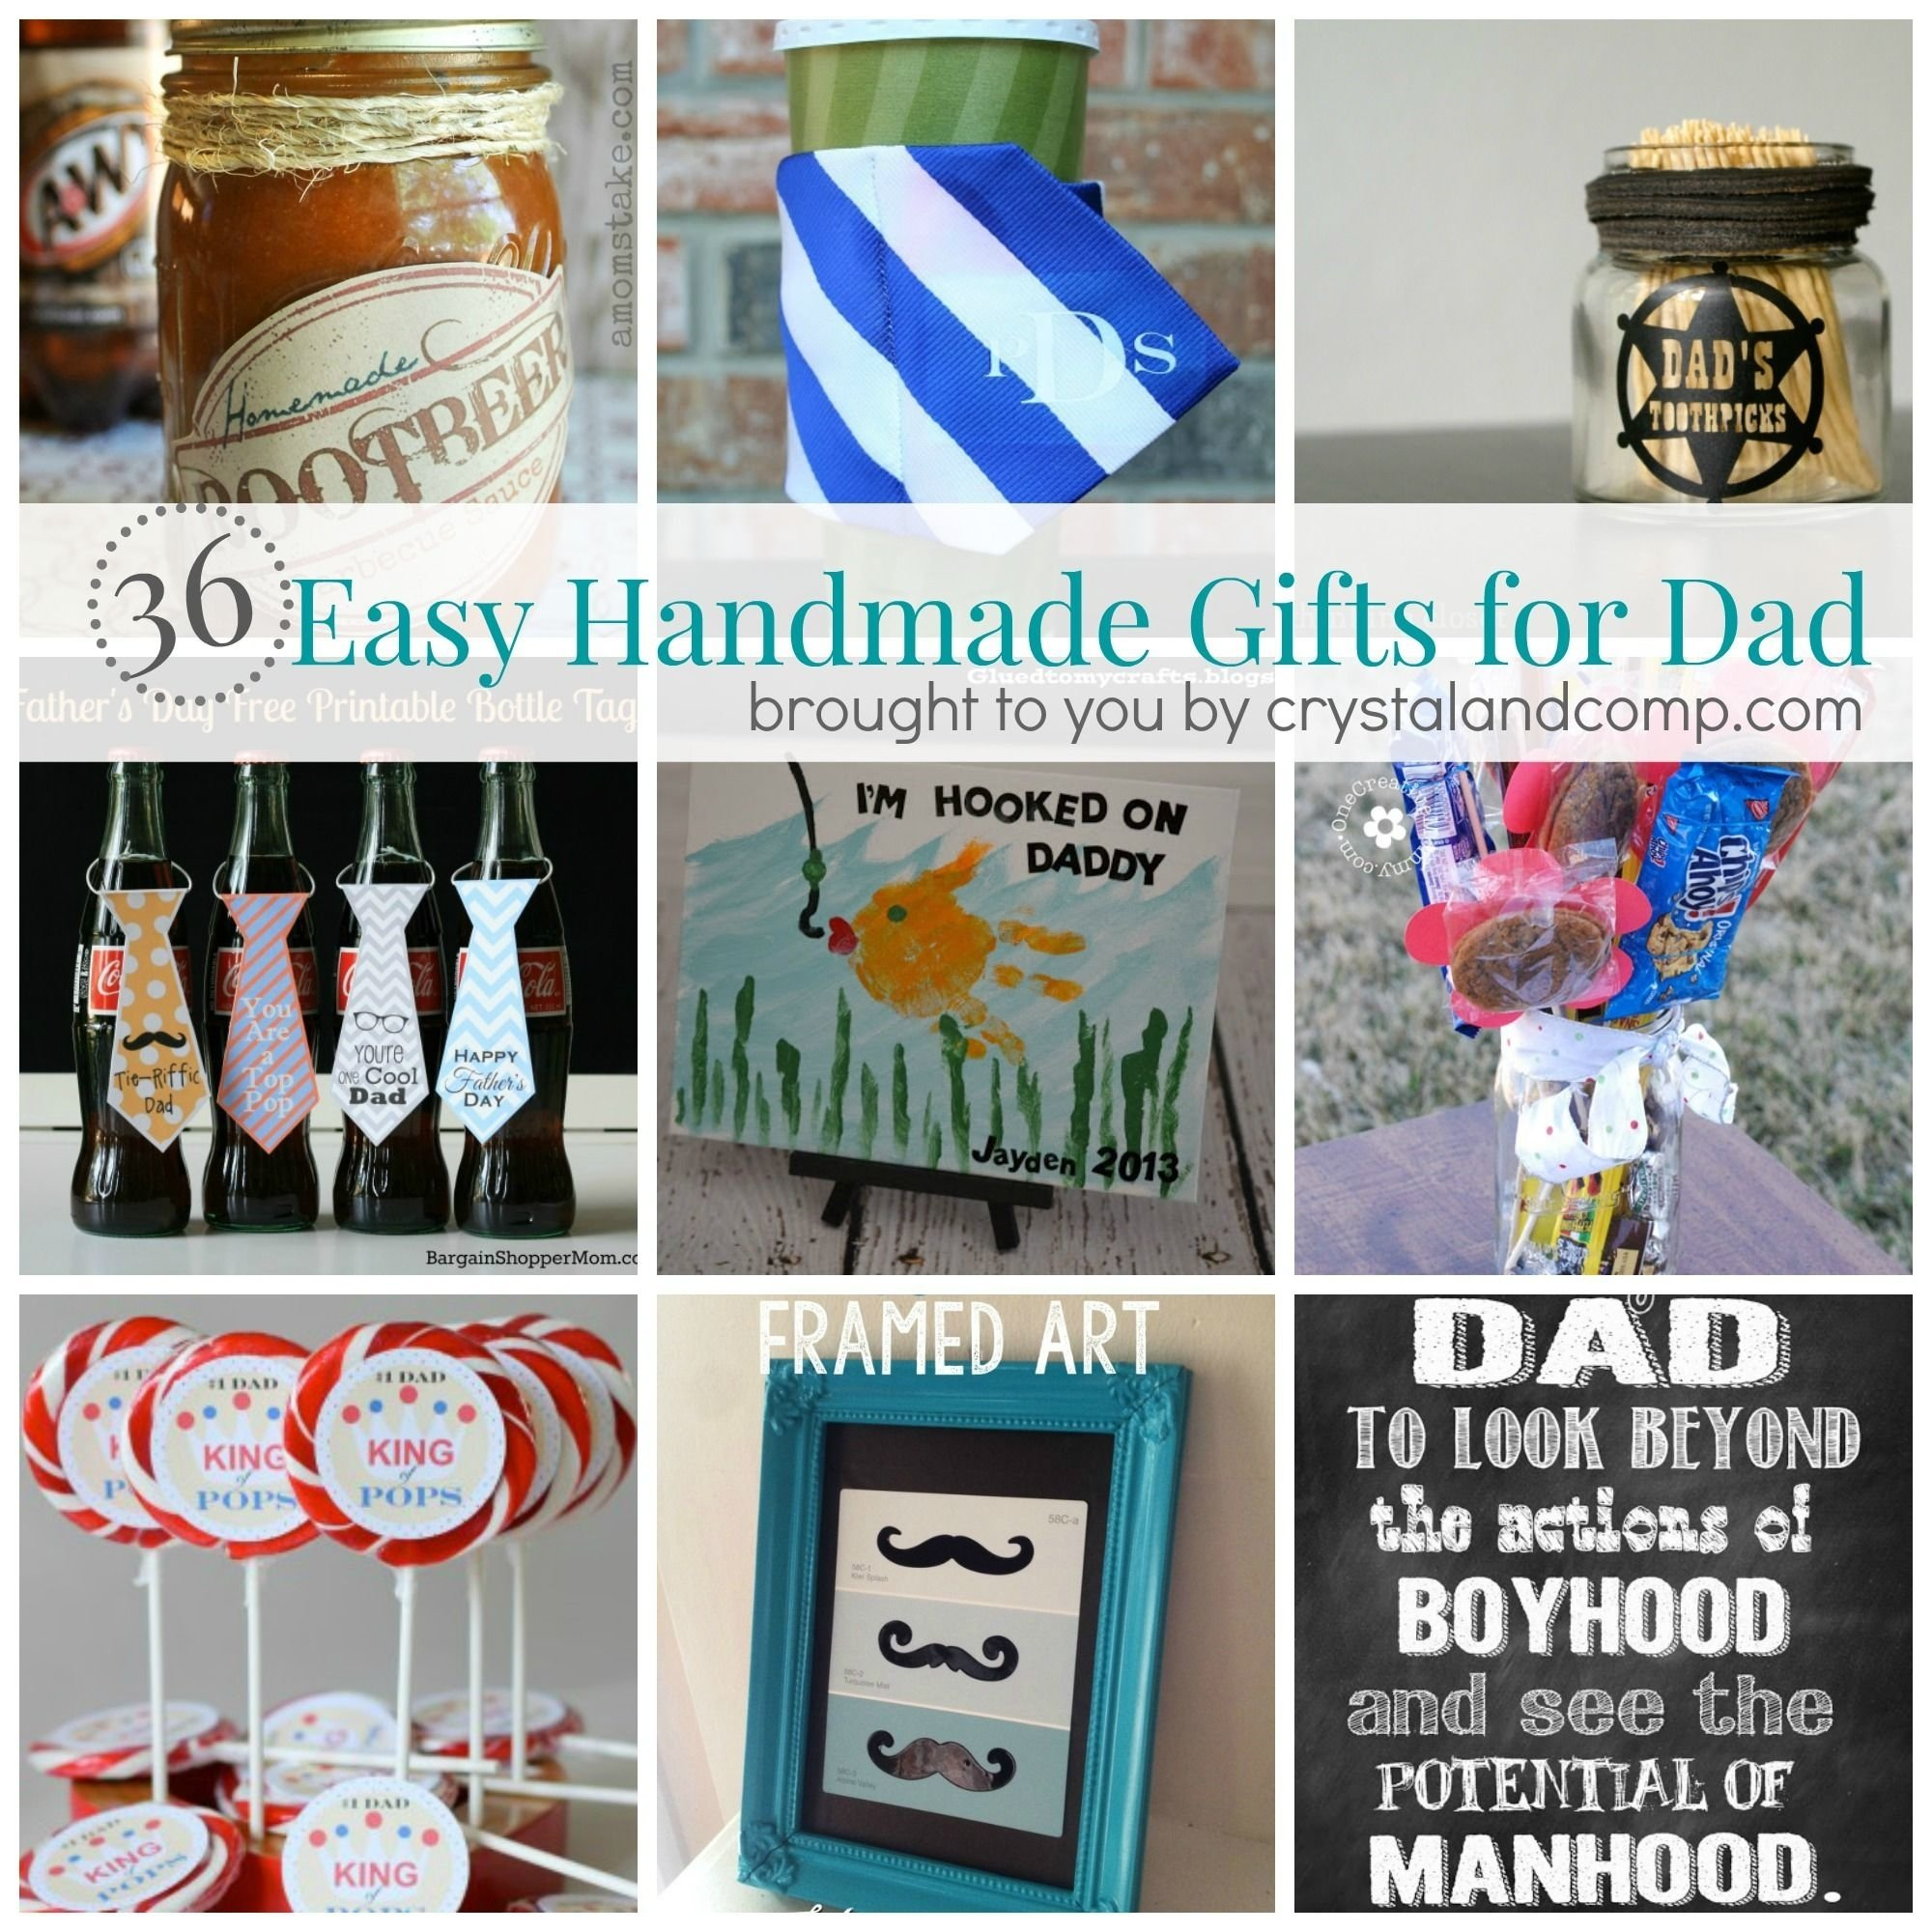 10 Famous Christmas Present Ideas For Dad 36 easy handmade gift ideas for dad easy homemade gifts dads and 13